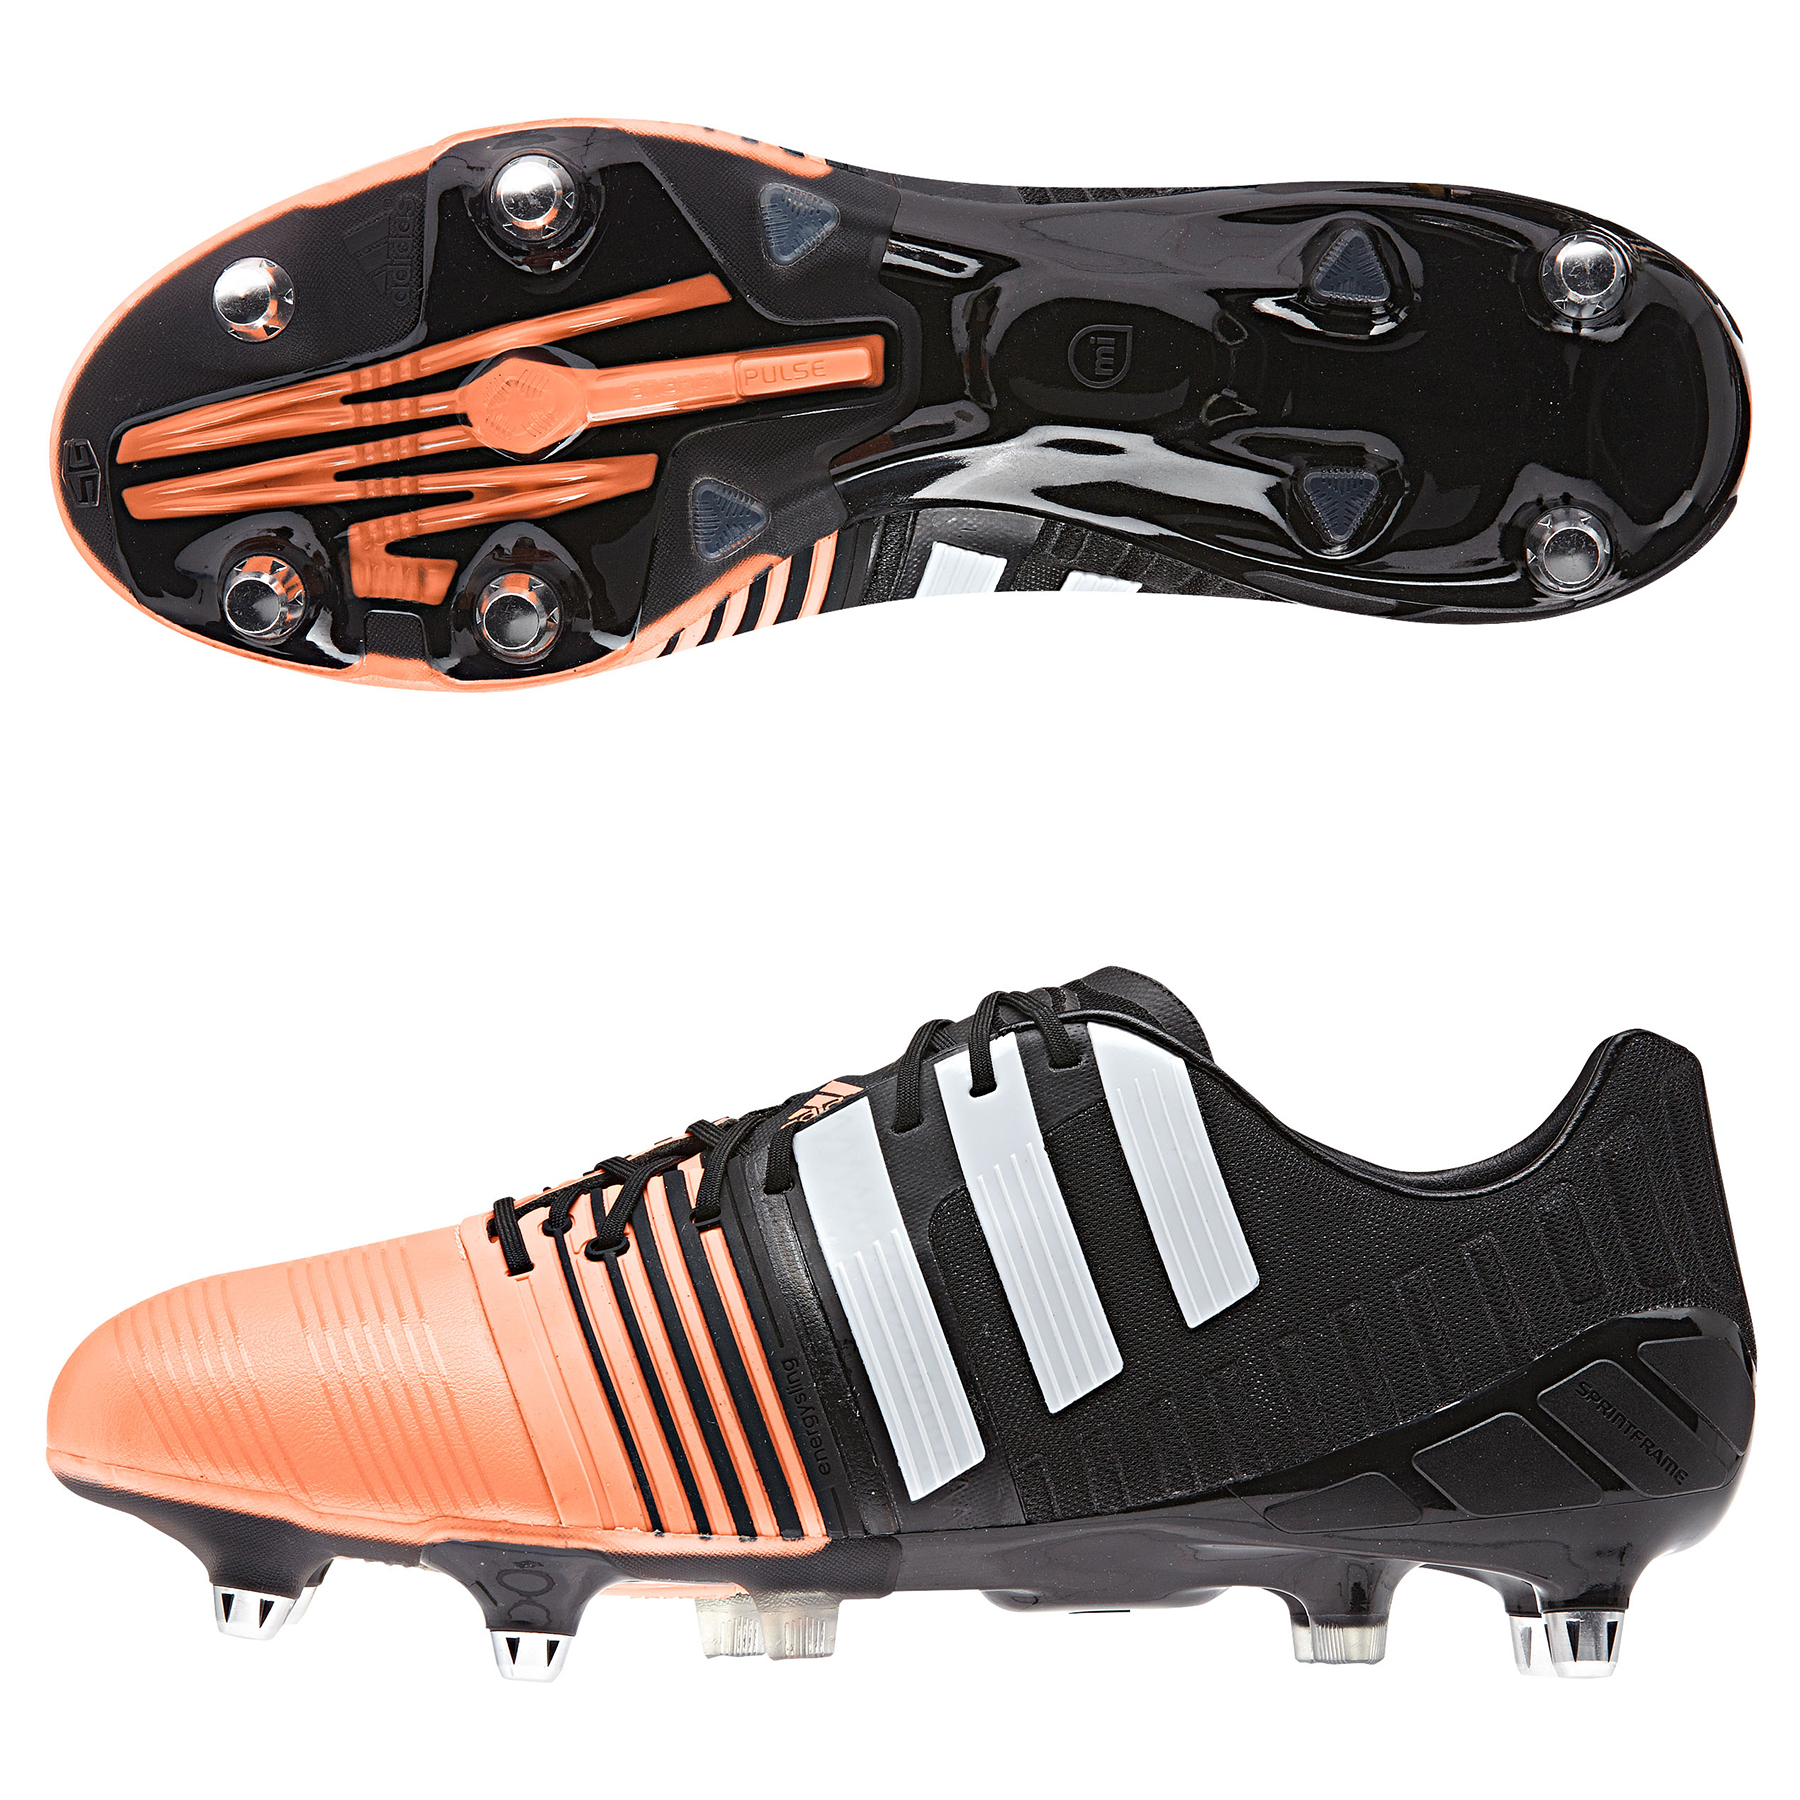 Adidas Nitrocharge 1.0 Soft Ground Football Boots Black